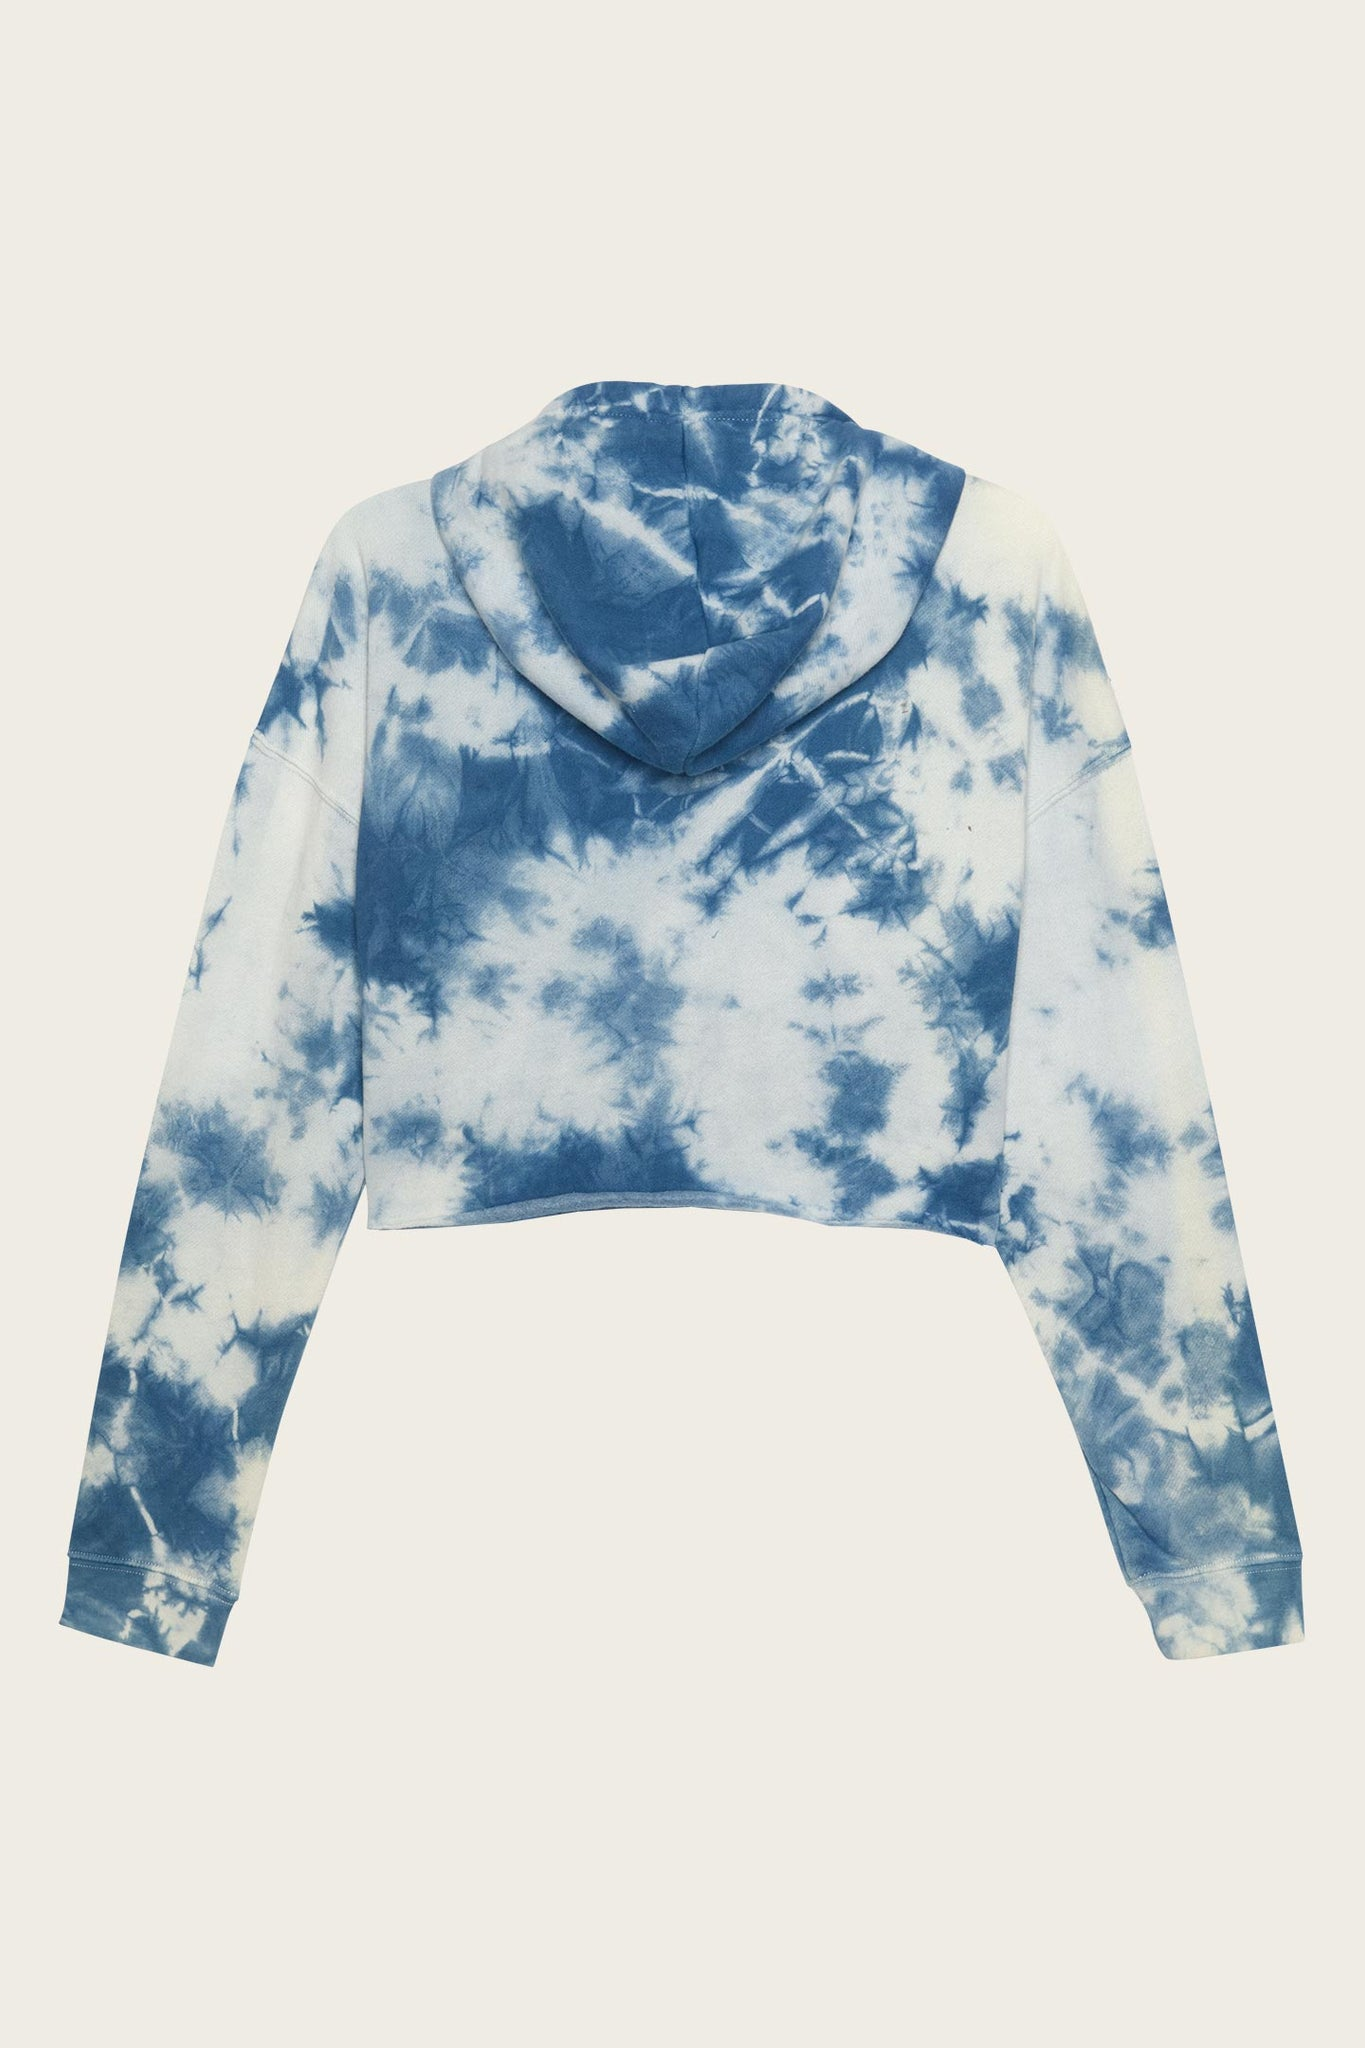 Dazed Hooded Tie Dye Pullover | O'Neill Clothing USA